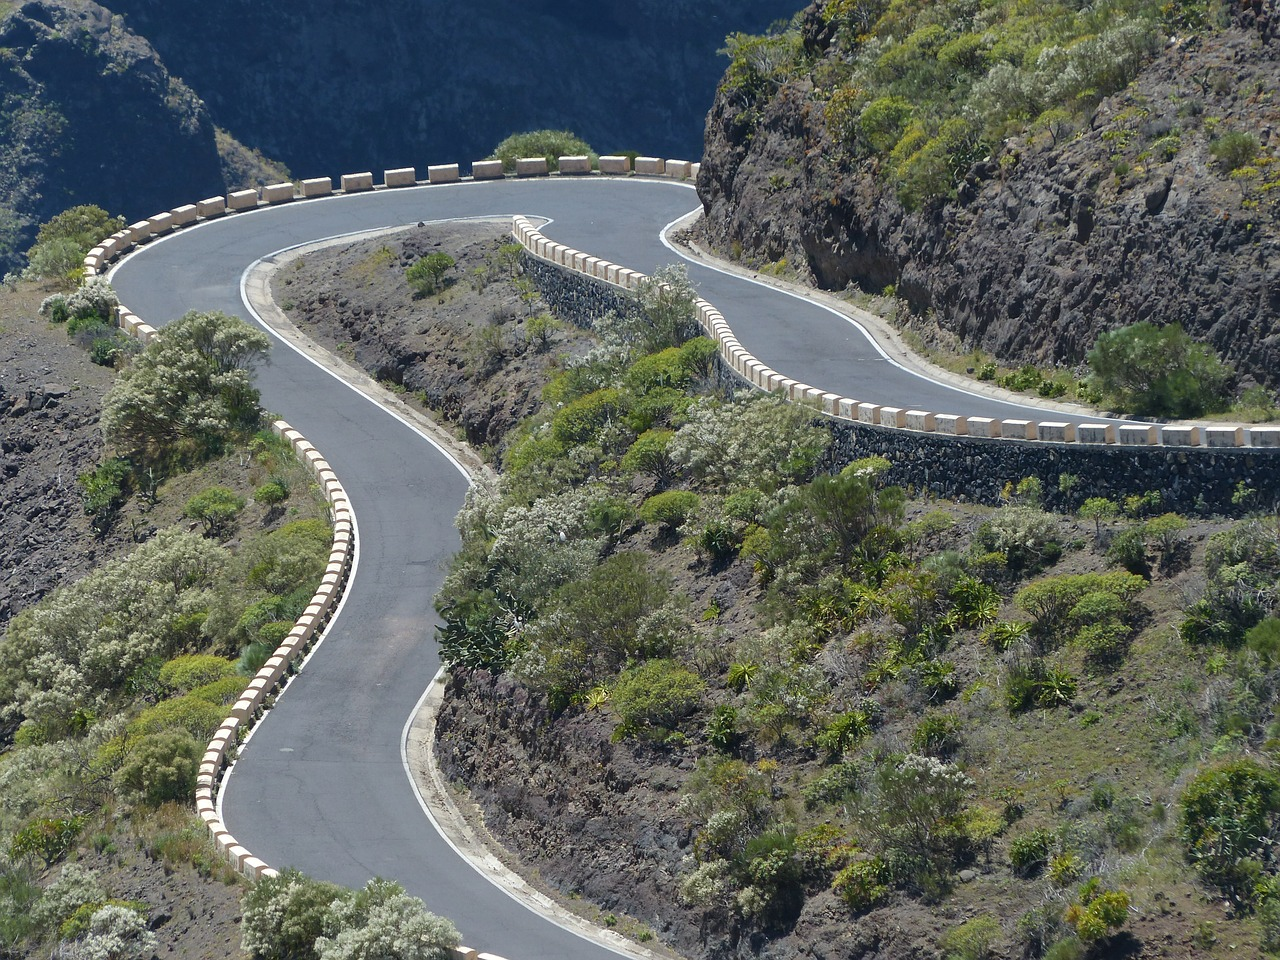 curve,return,pass road,mountain road,road,mountains,steep,eng,limit,teno mountains,mountain,tenerife,canary islands,free pictures, free photos, free images, royalty free, free illustrations, public domain